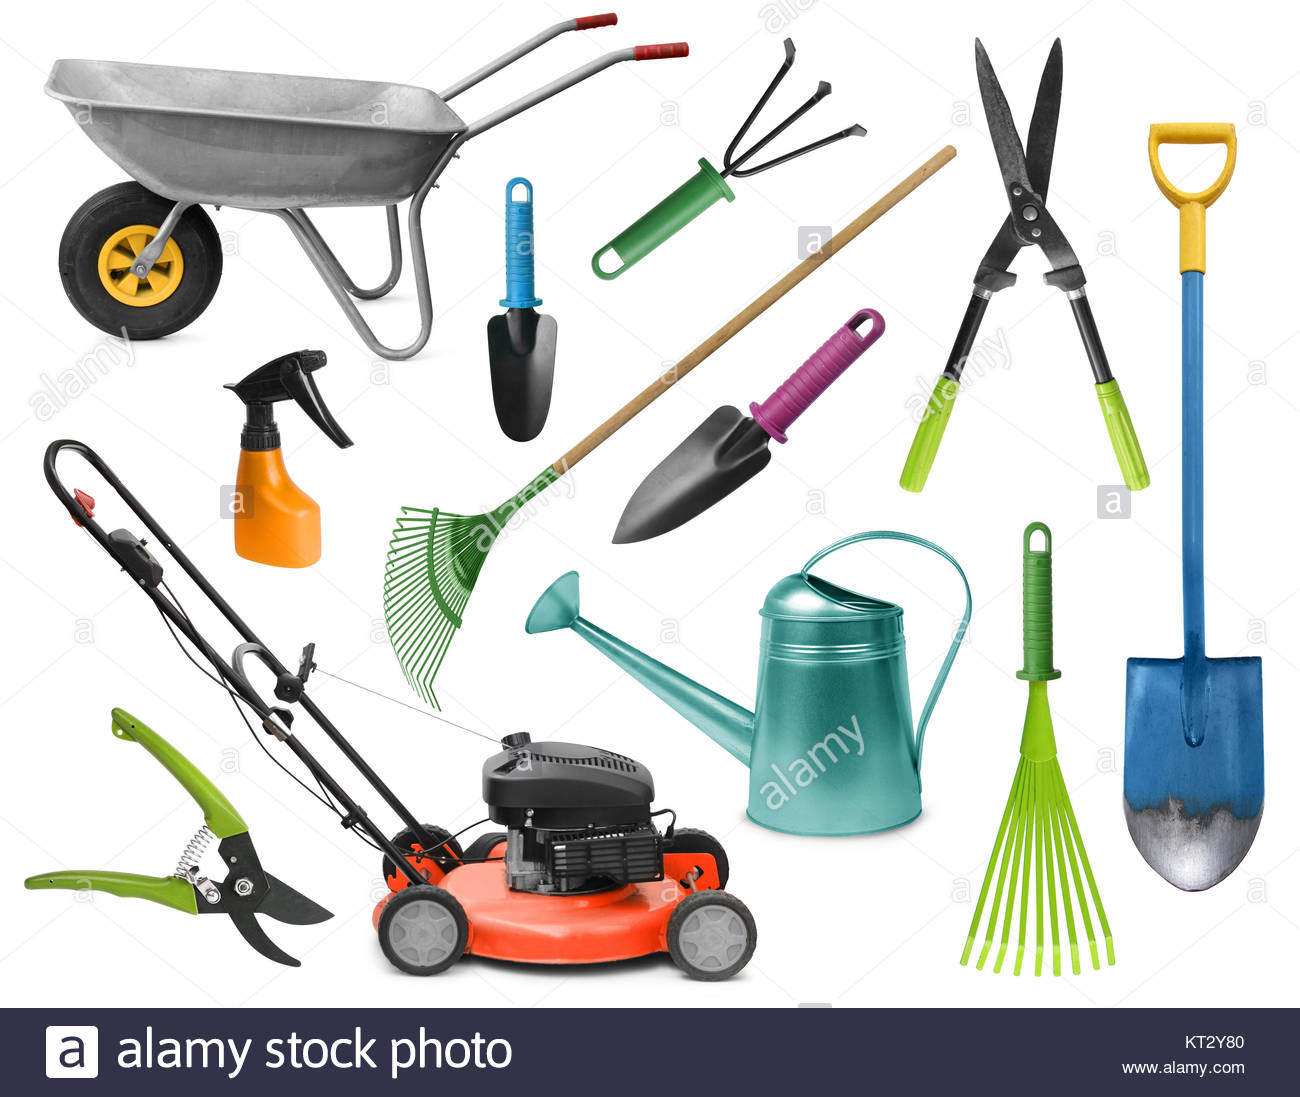 Grasscutter stock photos grasscutter stock images alamy for Essential gardening tools